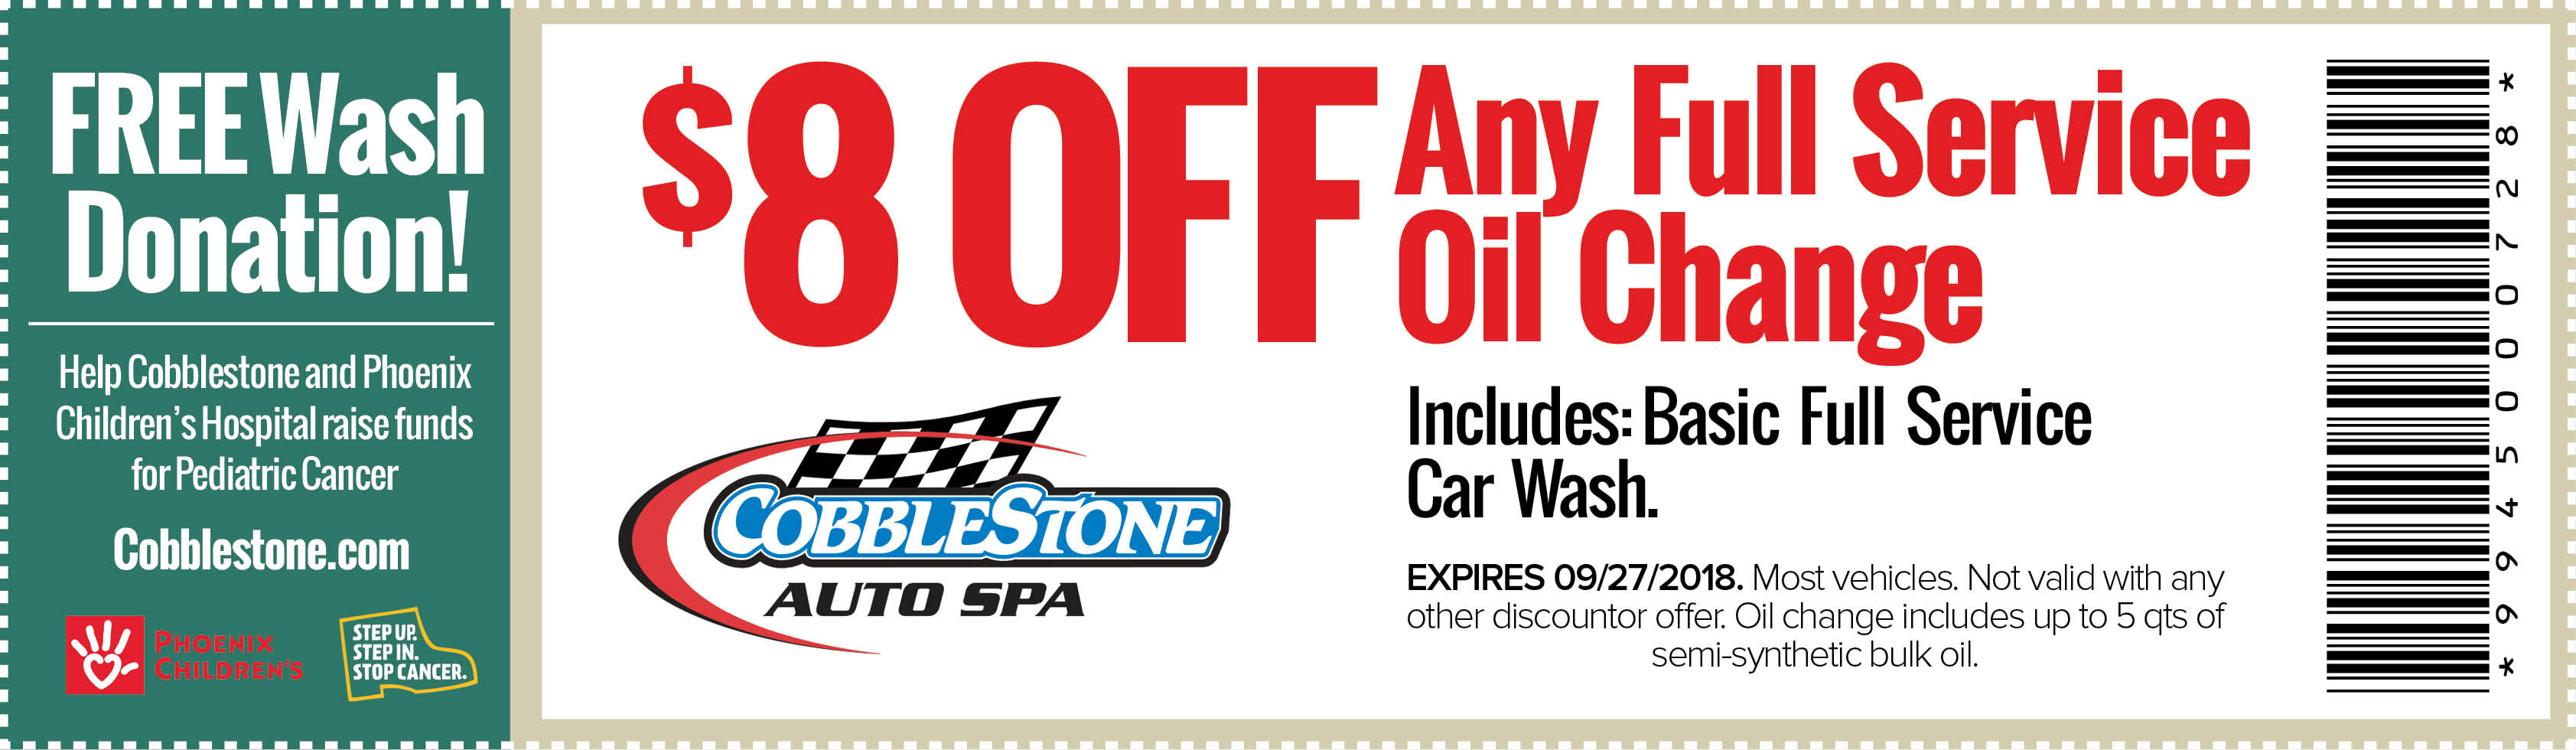 back to school couoon - save $8 off full service oil change